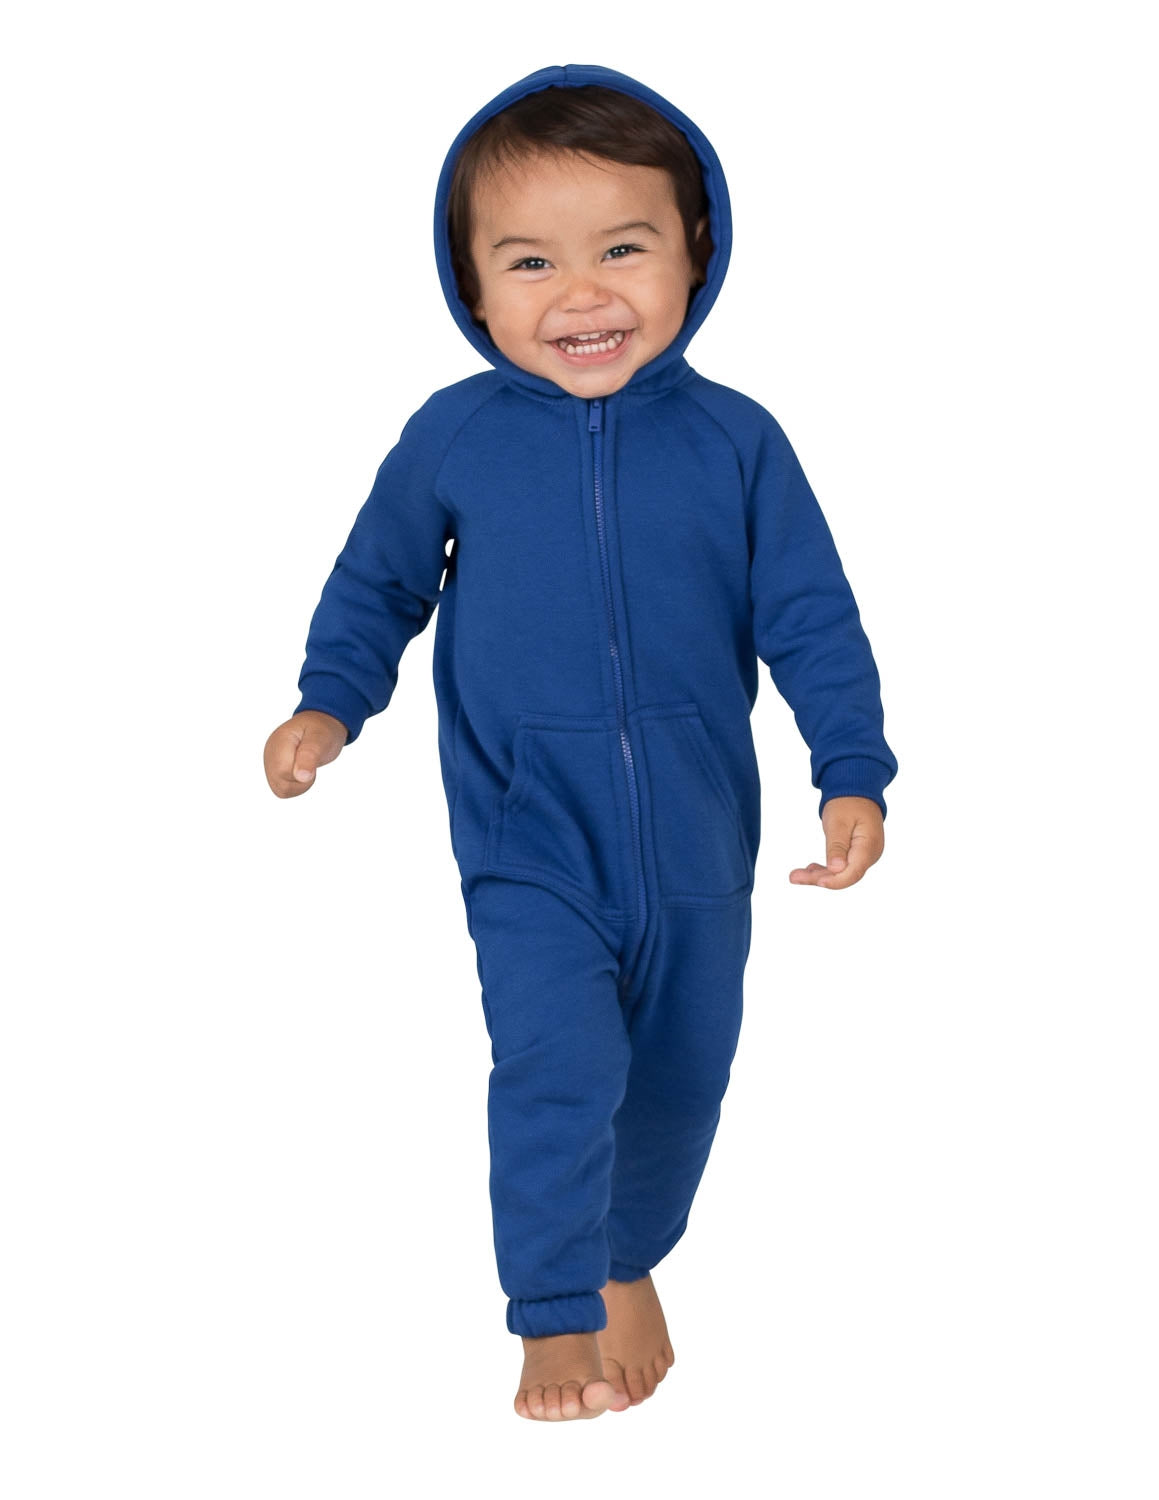 Blue Infant Footless Hoodie Onesie